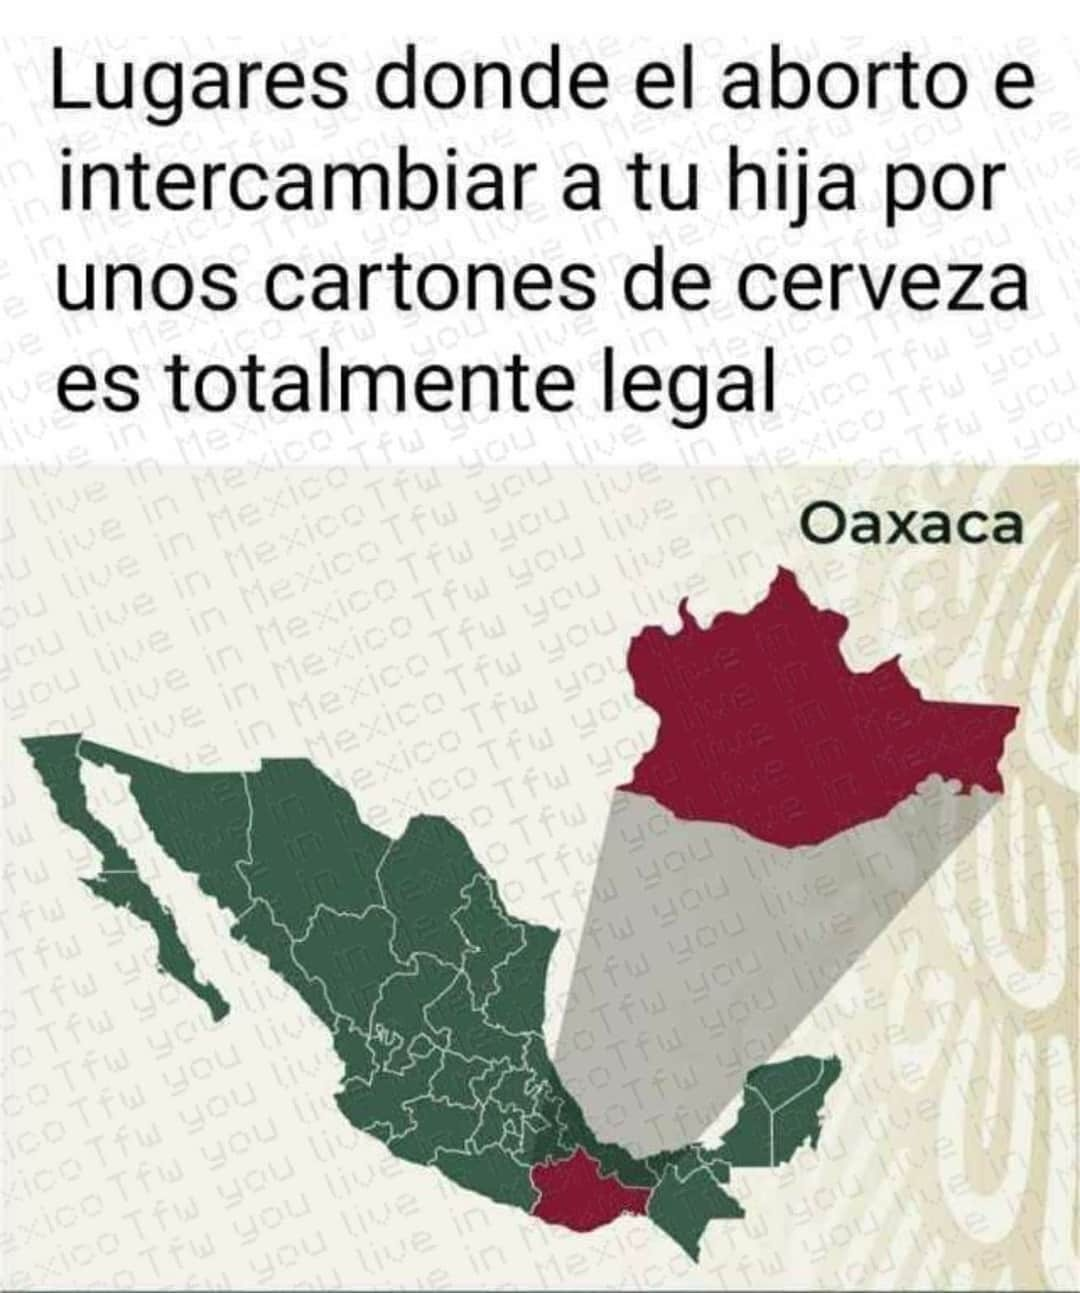 Pinches oaxacos - meme